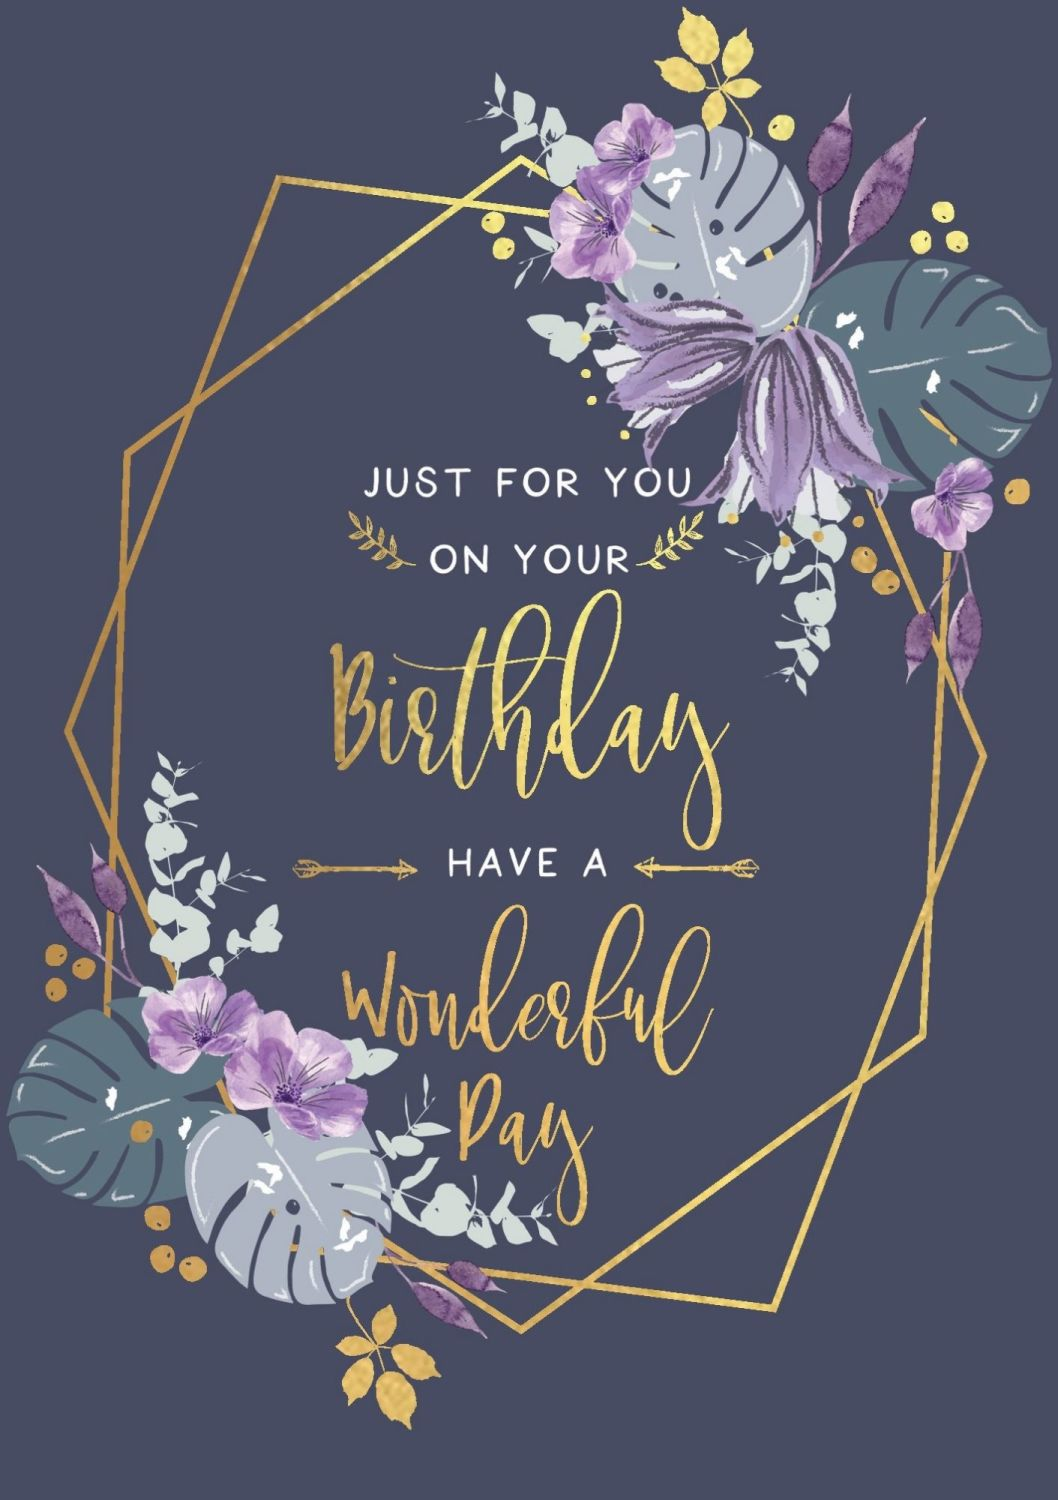 Have A Wonderful Day Birthday Card - JUST For YOU - BIRTHDAY Cards For HER